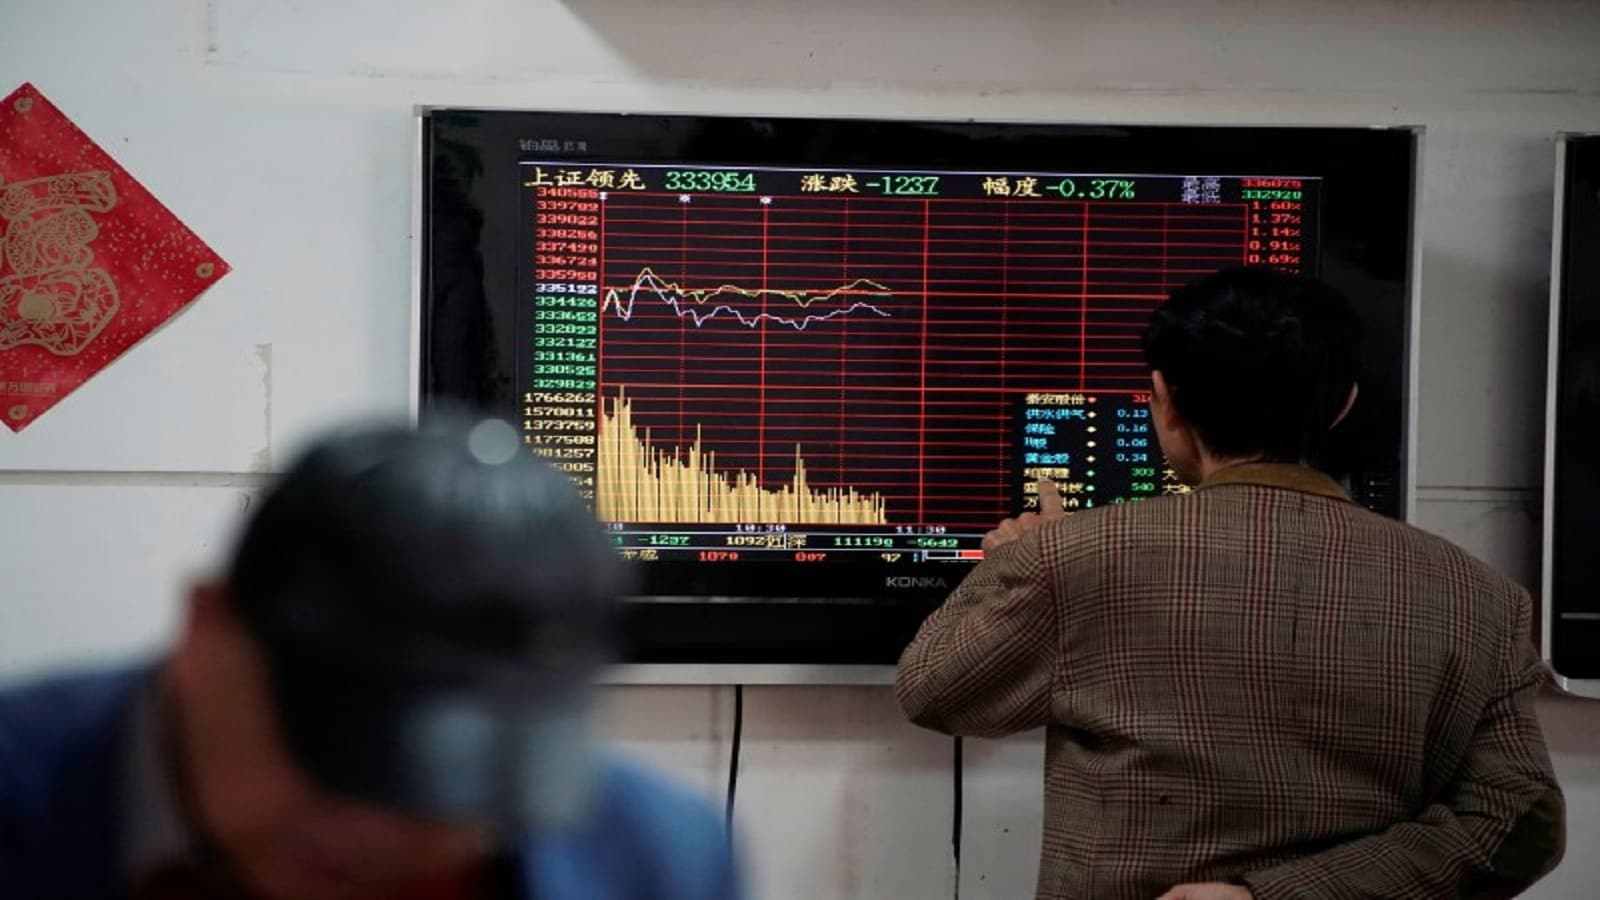 3. Markets At Close On Monday: The Sensex and Nifty closed lower on Monday, dragged by losses across most sectors, as investors awaited cues after lacklustre growth in December quarter corporate earnings. The Sensex closed down 0.87 percent at 35,498.44, its lowest closing level since December 24. The Nifty ended 0.78 percent lower at 10,640.95, its lowest close since December 11. (Image: Reuters)